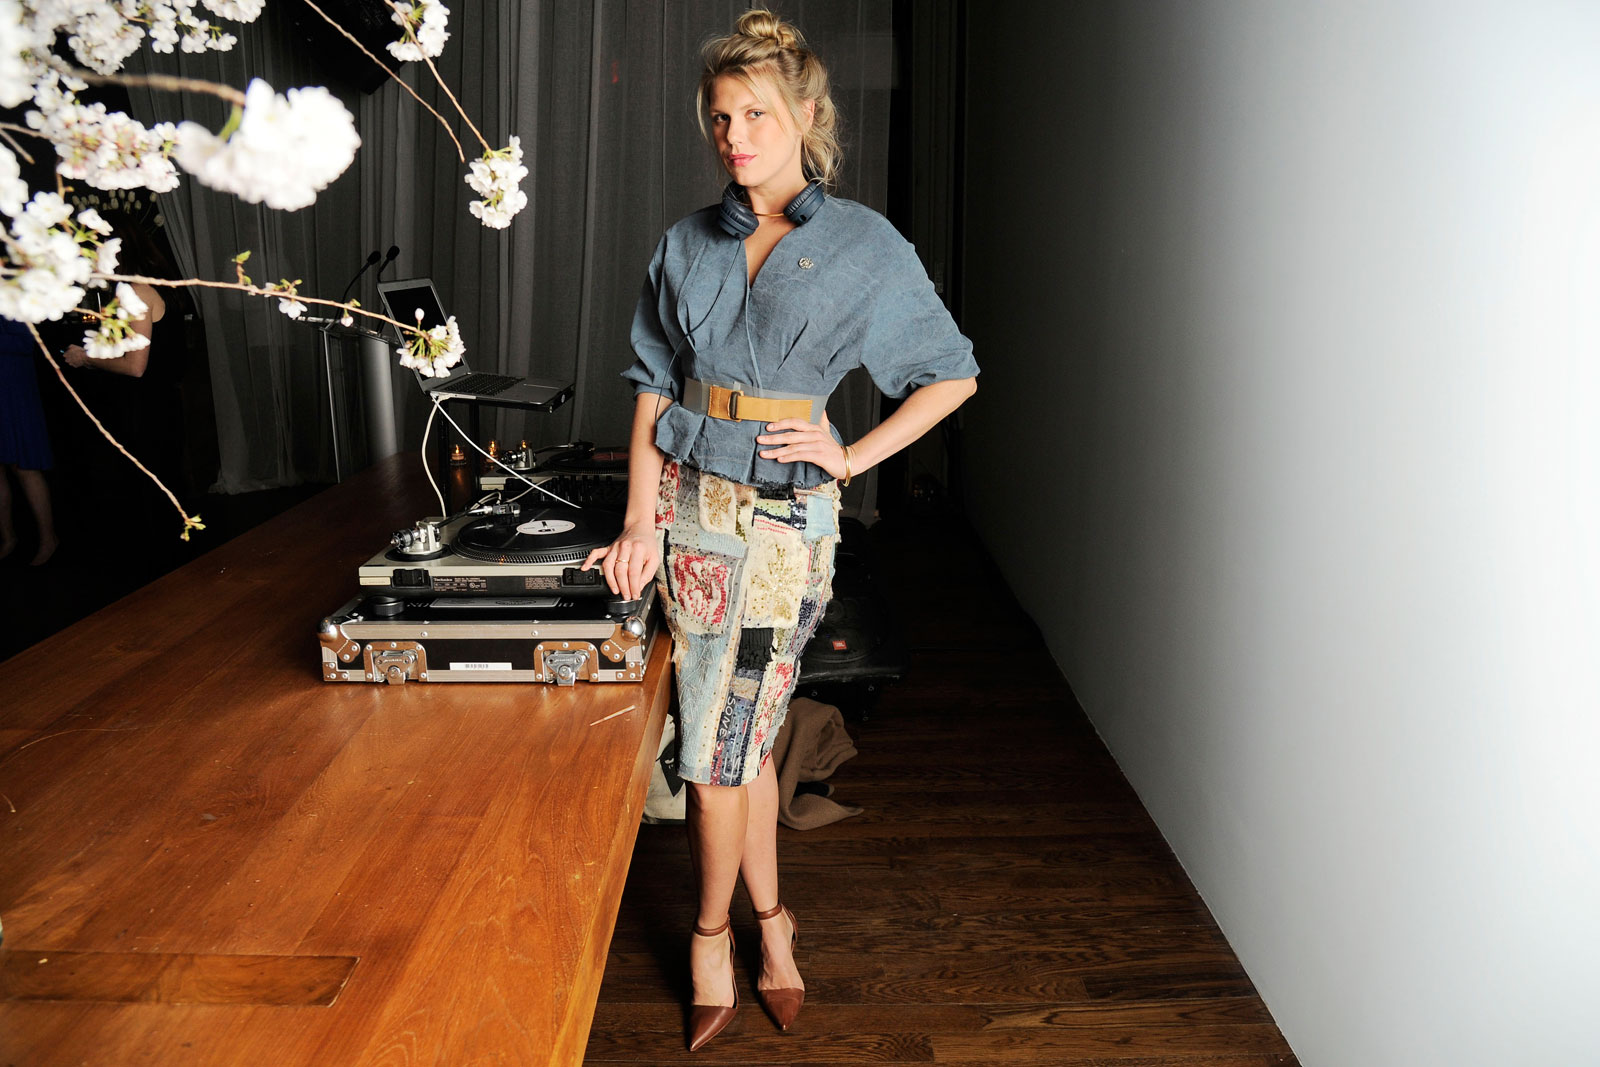 Alexandra Richards gets engaged, dad Keith Richards and mom Patti Hansen 'could not be happier'